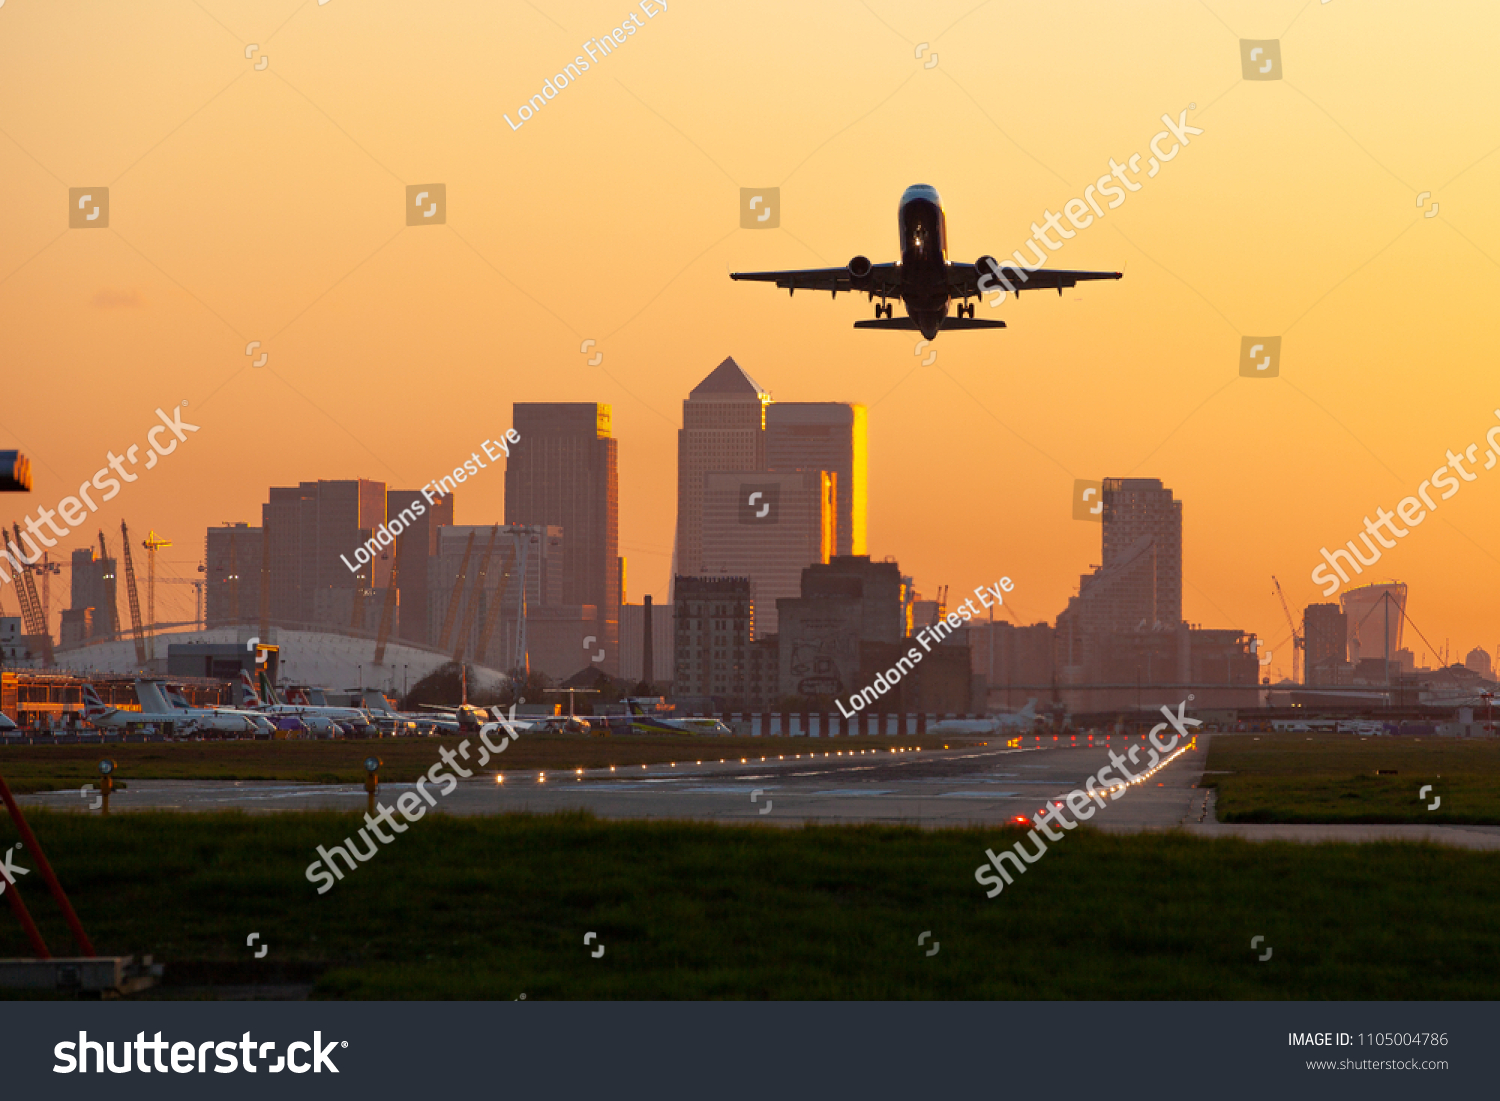 london city airport with canary wharf #1105004786